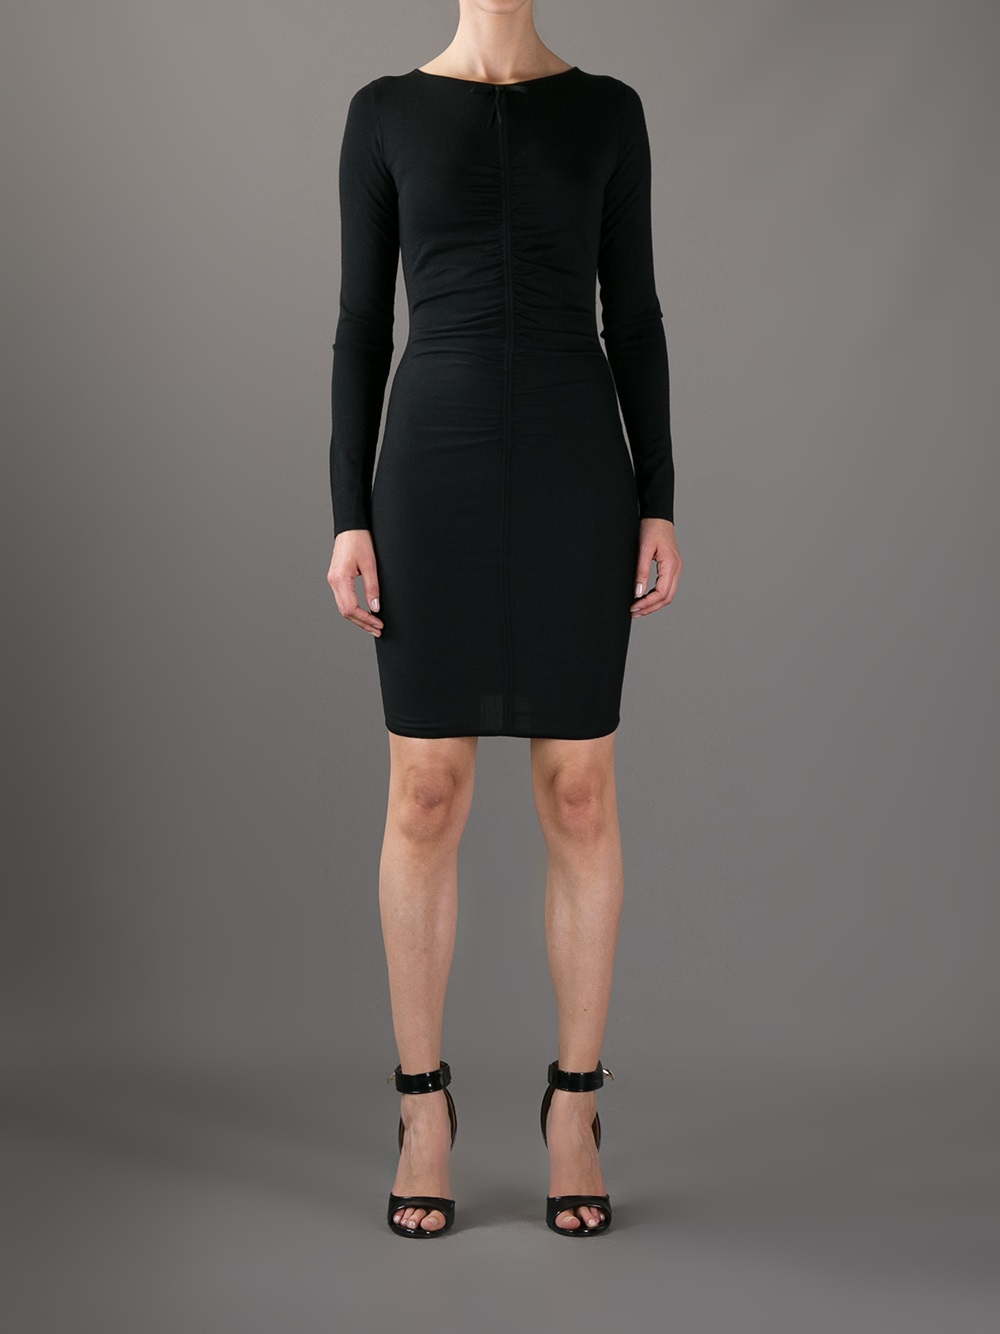 Pucci Wool Dress Black